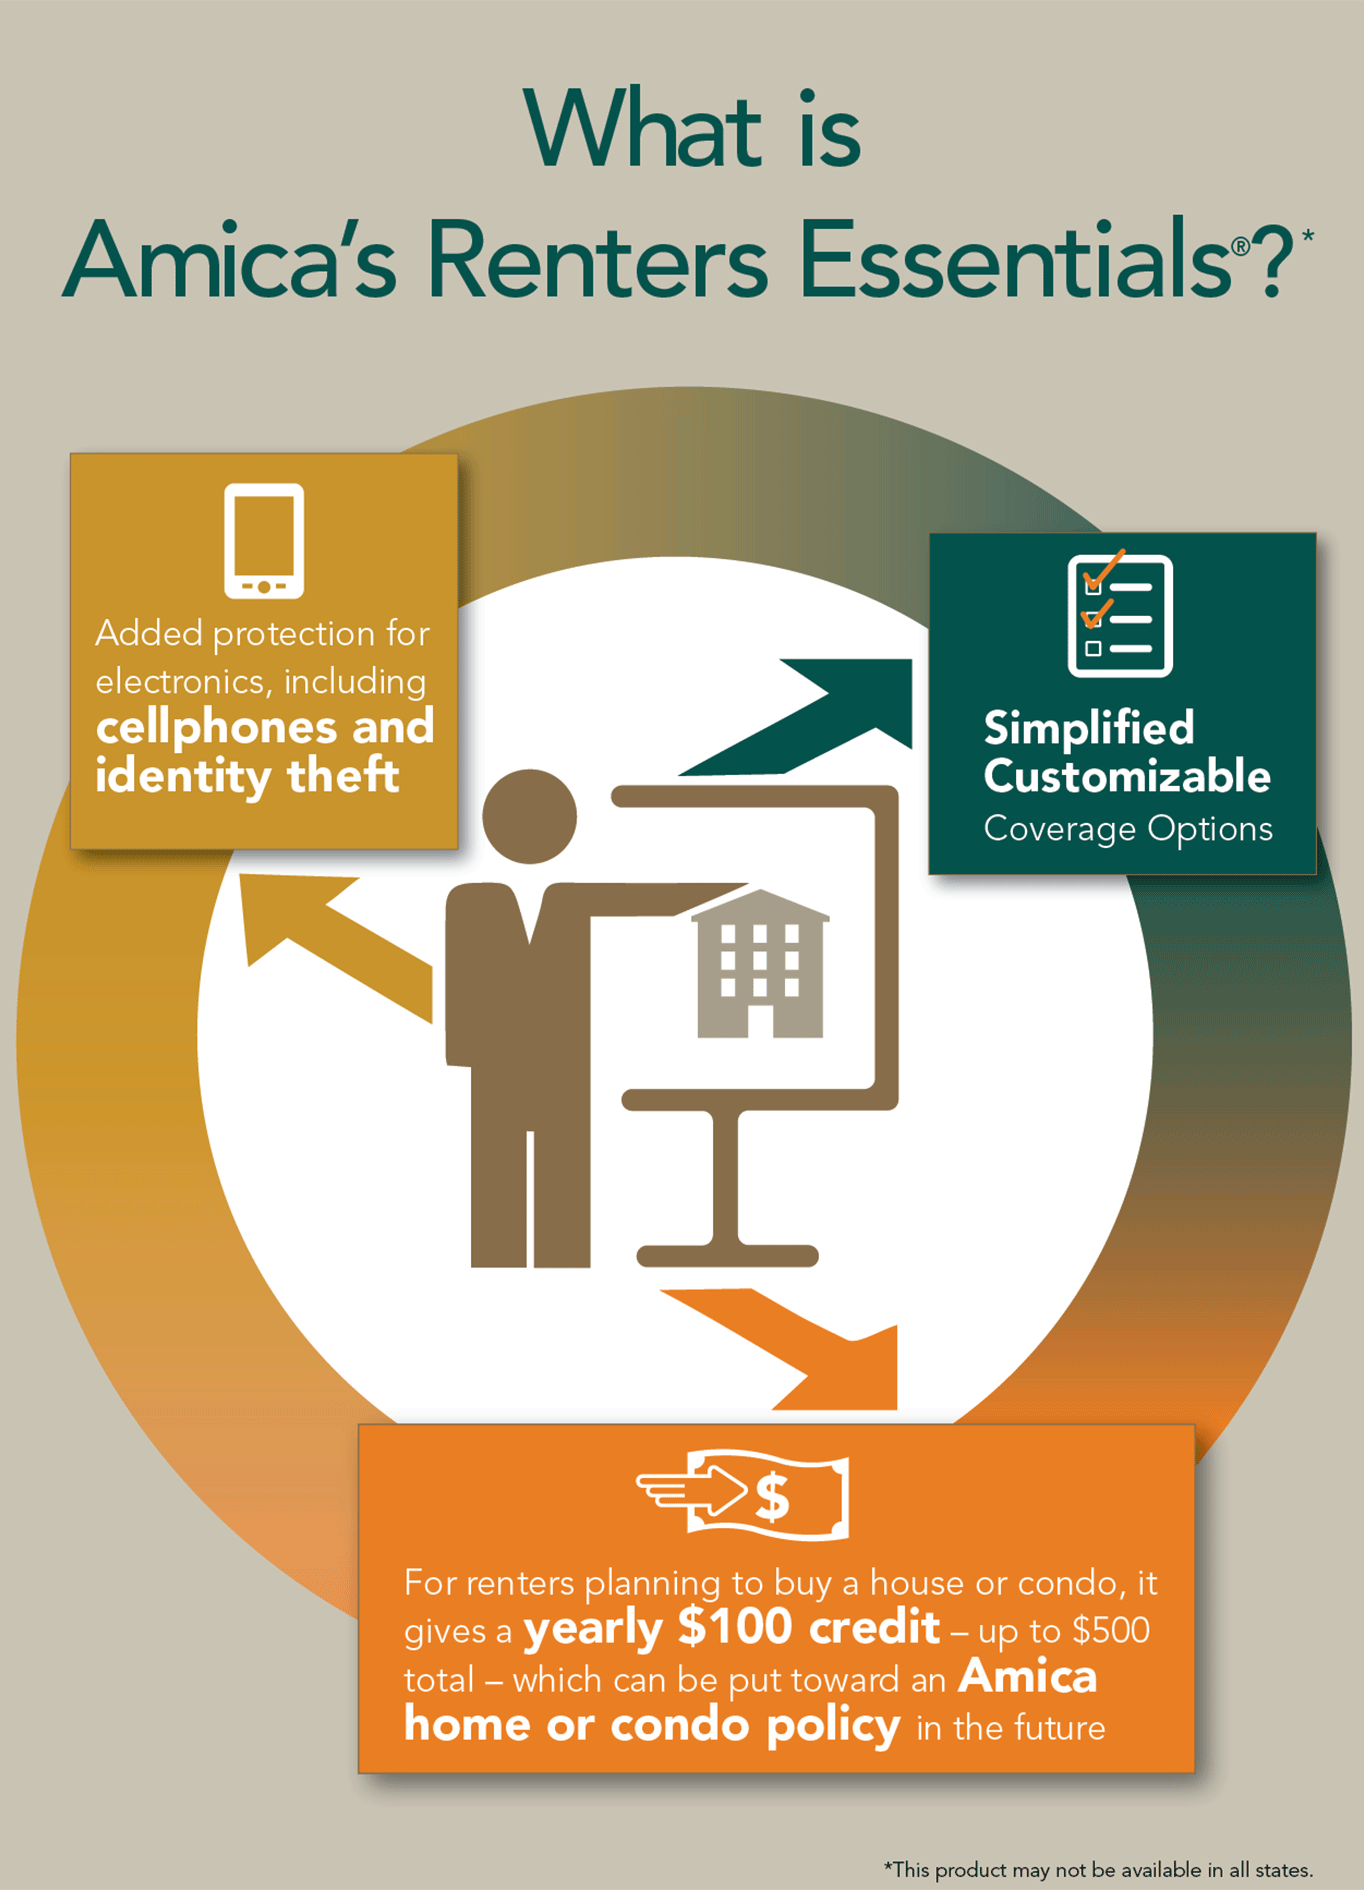 Renters Essentials is customizable and provides extra protection for belongings: You can earn credit toward future policies